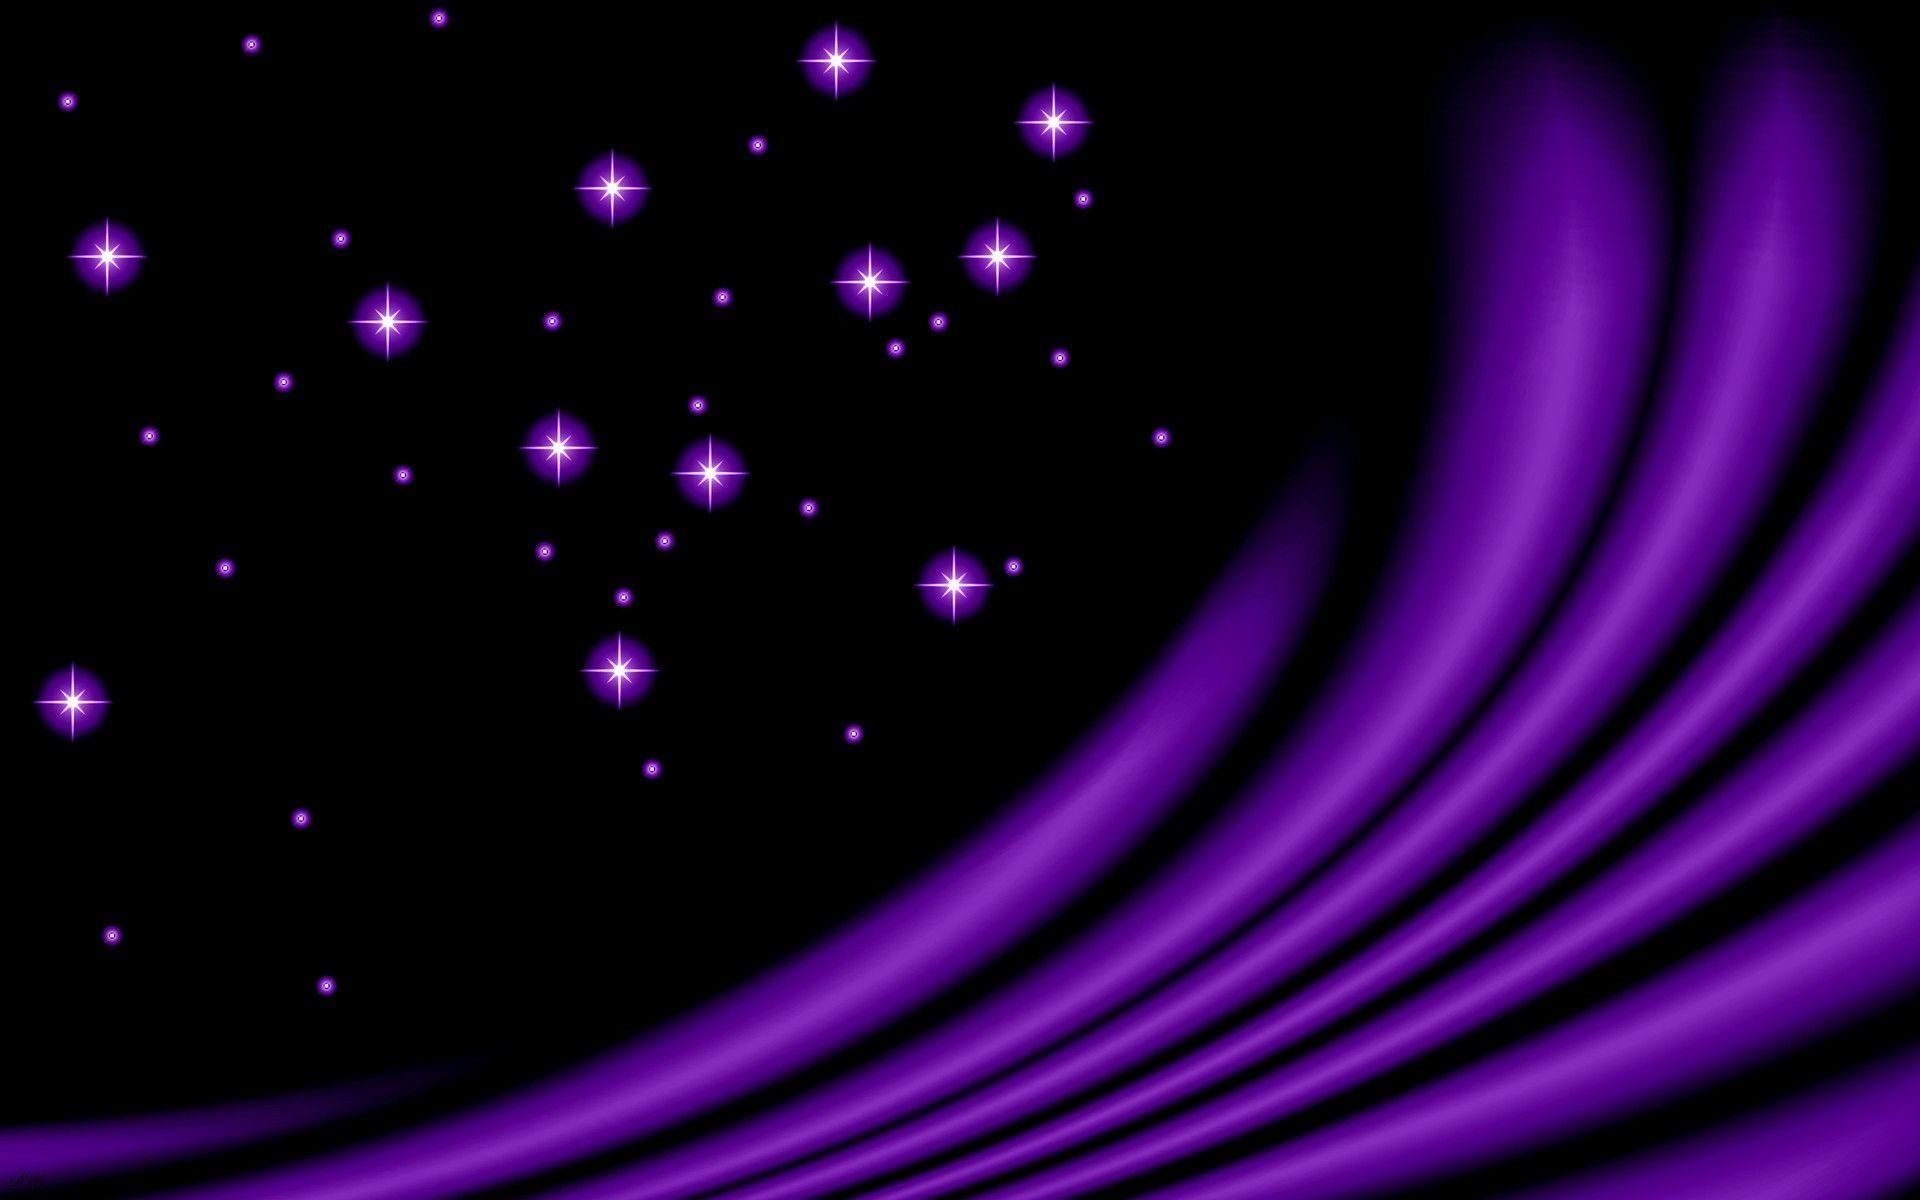 Cool purple wallpapers wallpaper cave for The latest wallpaper designs